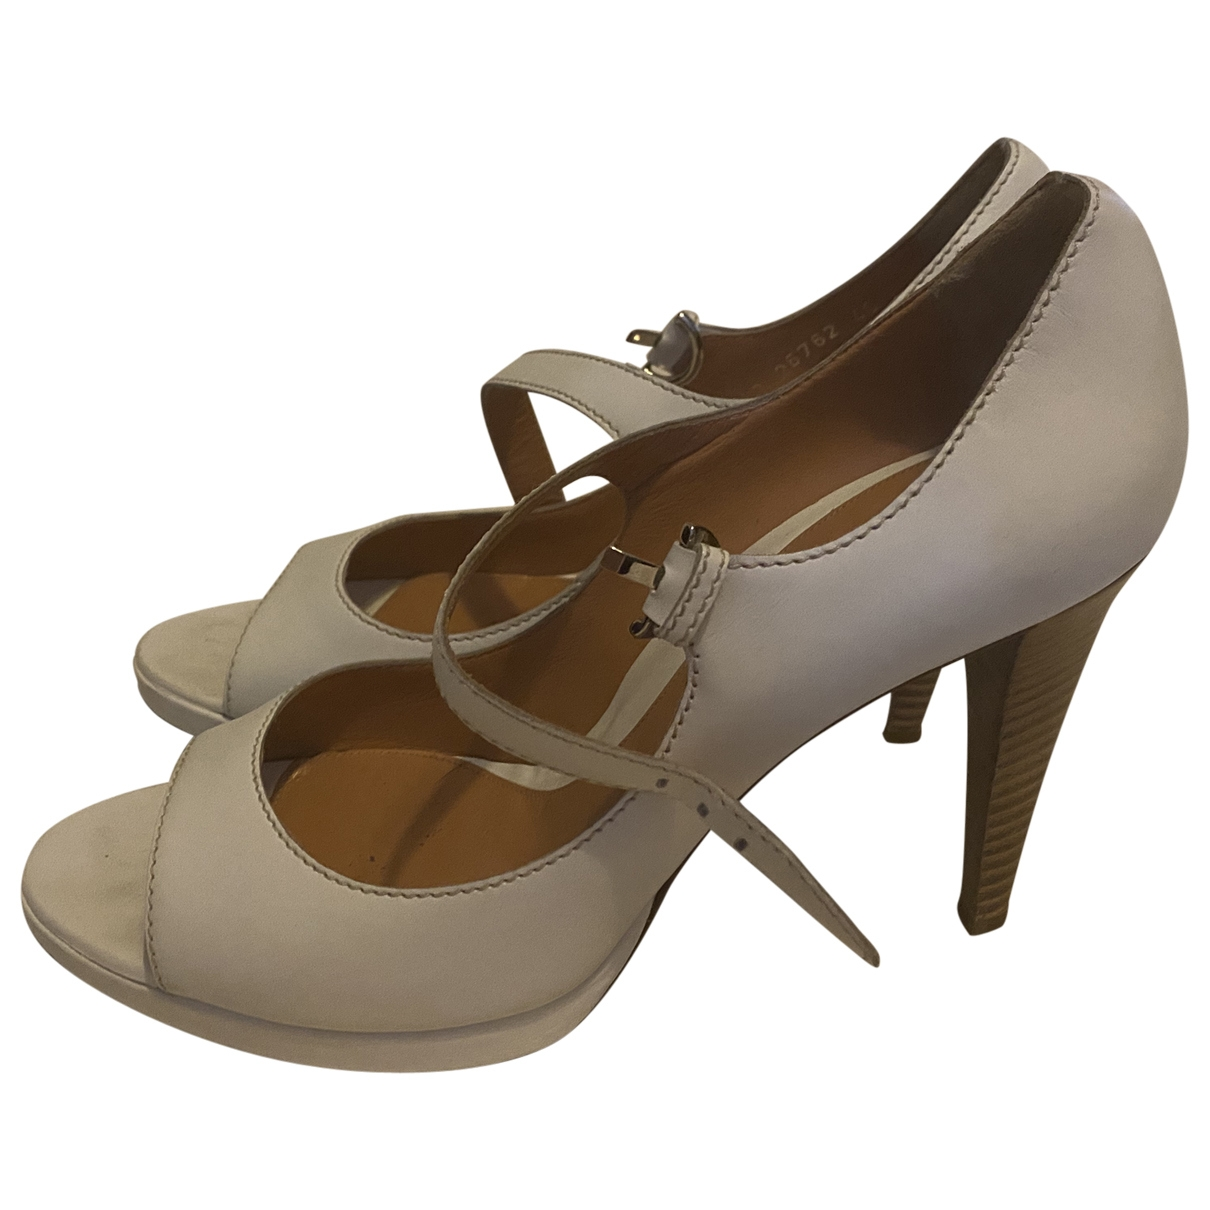 Sergio Rossi \N White Leather Sandals for Women 40 EU